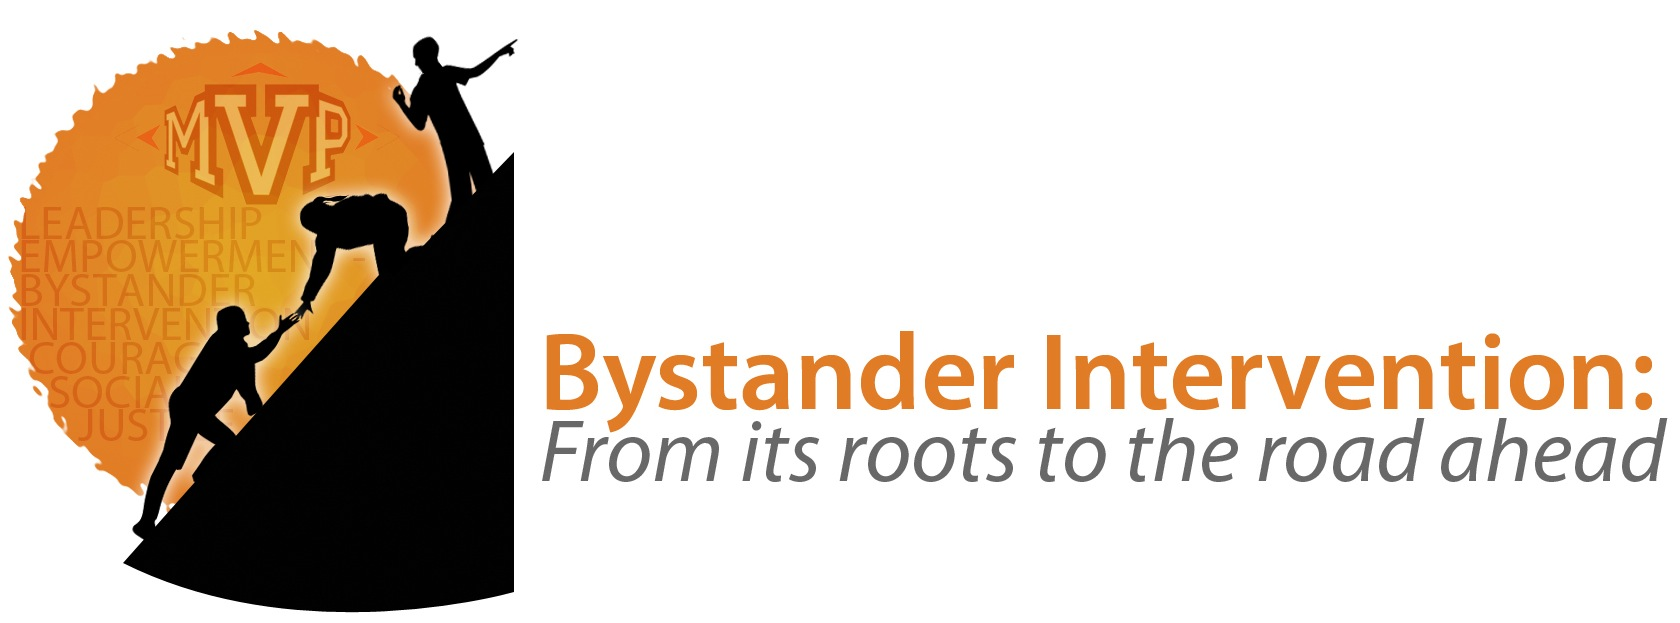 Bystander Intervention conference logo